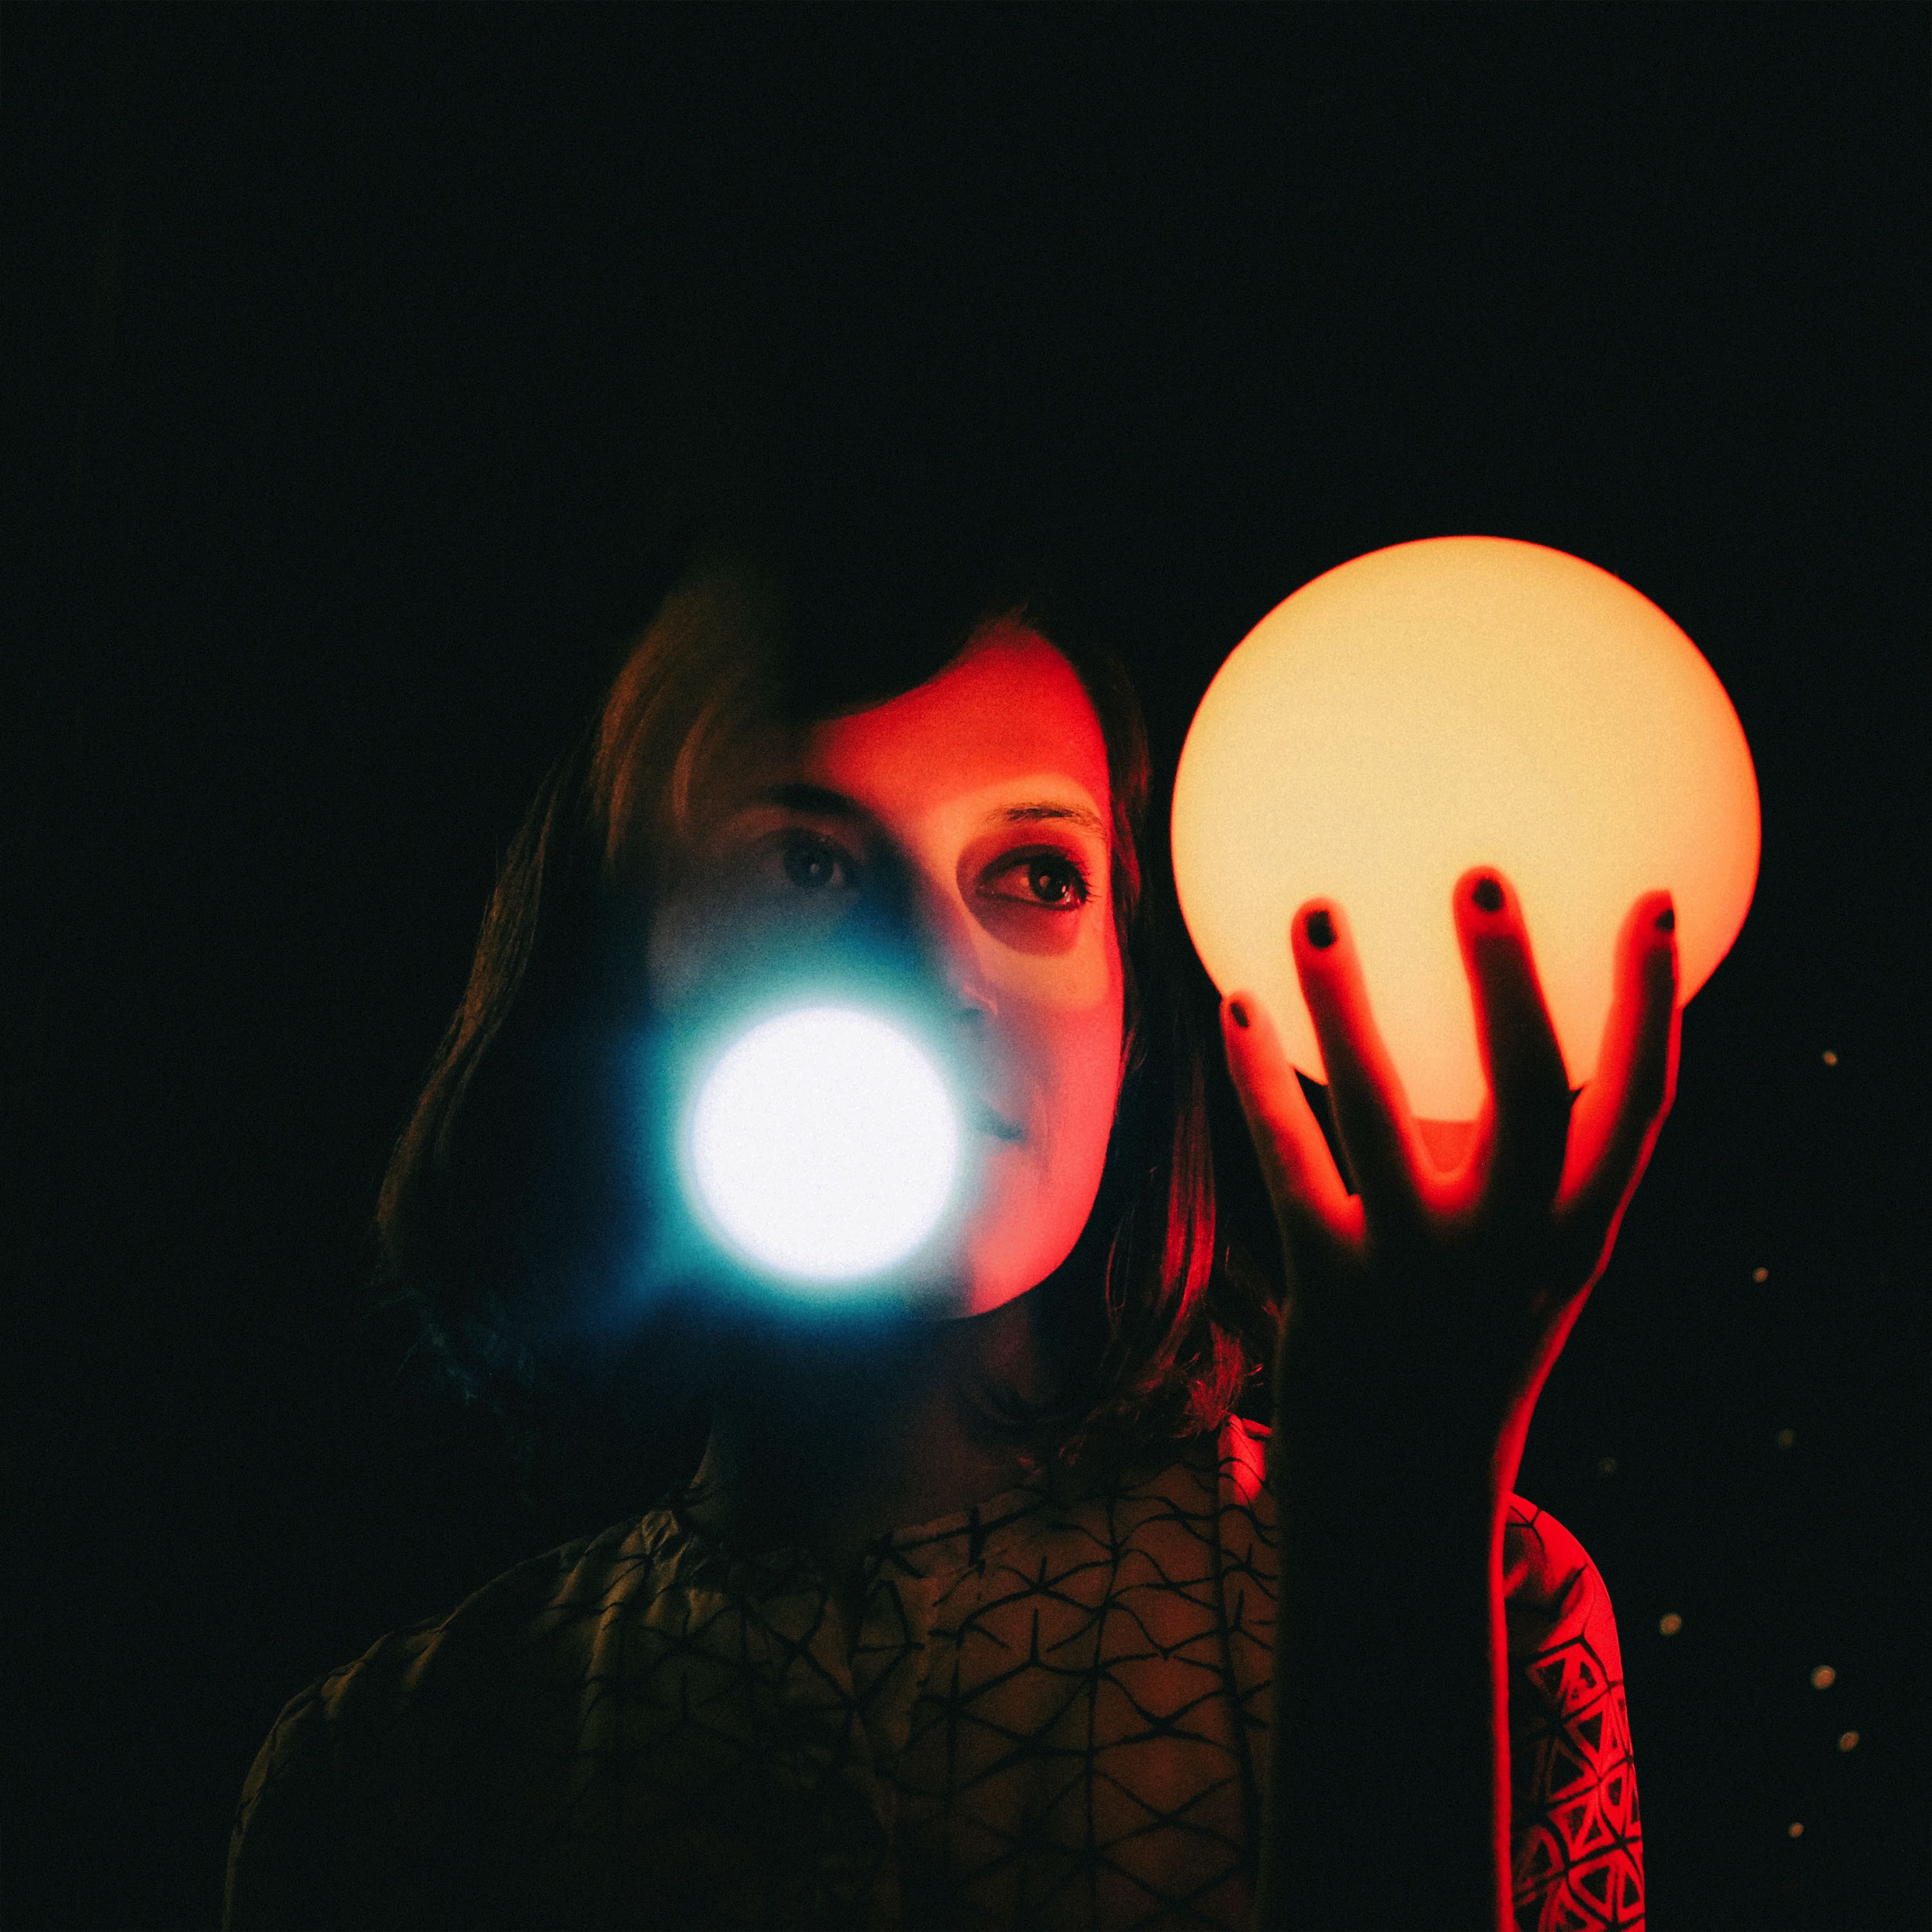 """""""Octagonal Room"""" by Salami Rose Joe Louis is Northern Transmissions' 'Song of the Day'"""